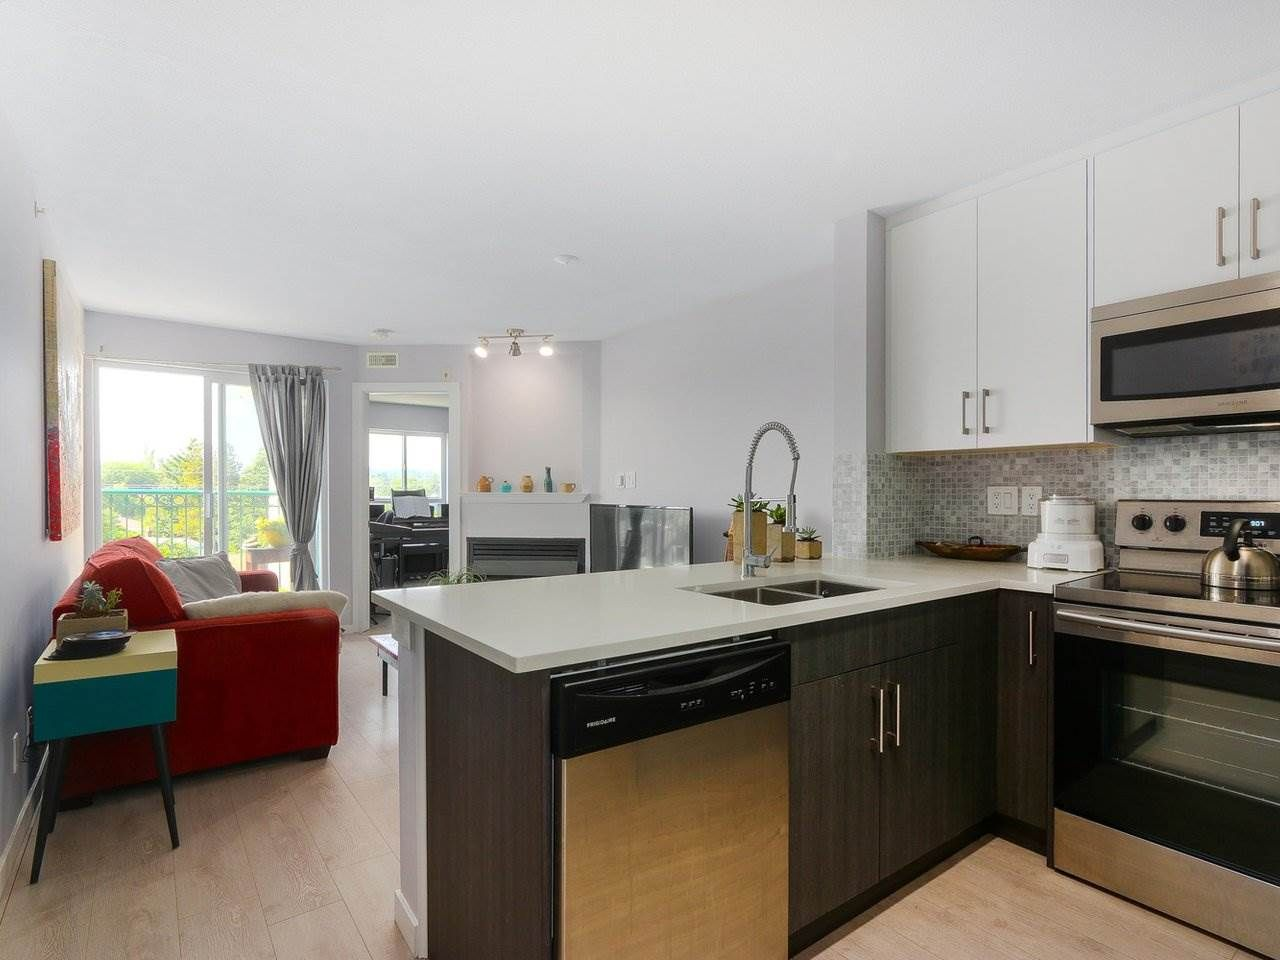 "Main Photo: PH12 868 KINGSWAY Avenue in Vancouver: Fraser VE Condo for sale in ""KINGS VILLA"" (Vancouver East)  : MLS®# R2375408"